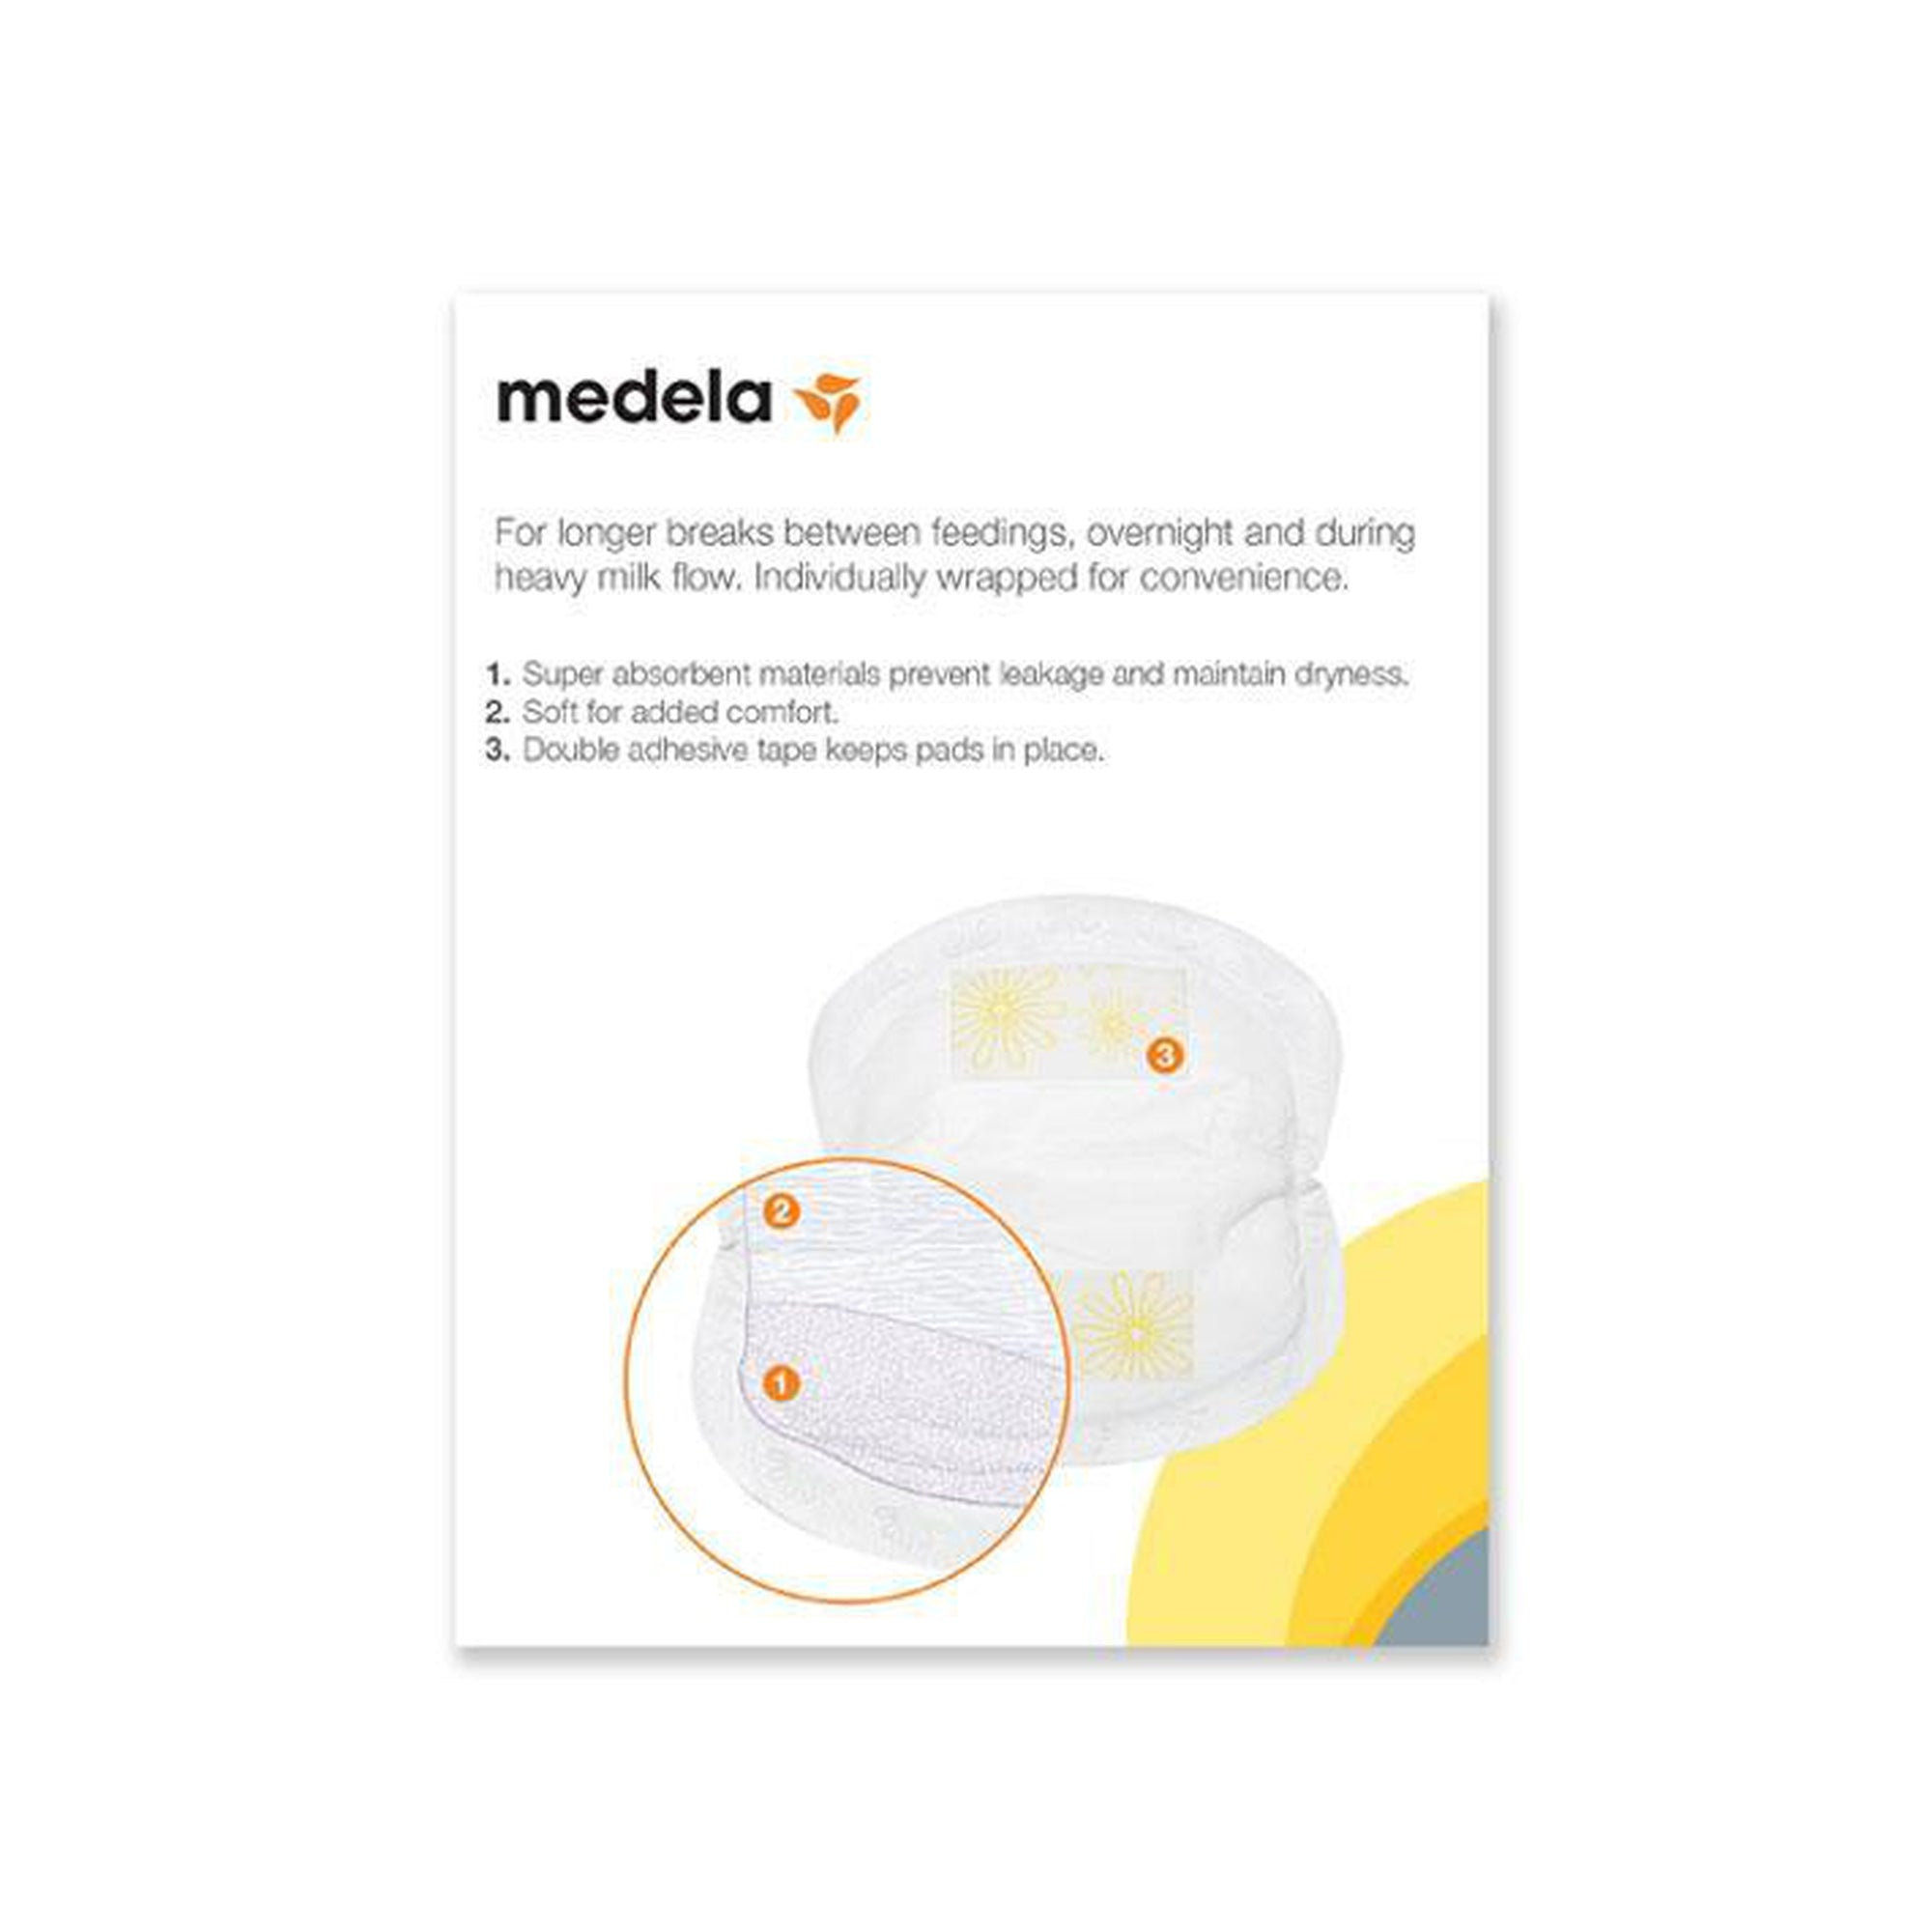 Medela Disposable Nursing Pads (30 Pcs Pack)-Breast Pads-Mother and Baby Shop Kenya's #1 Online Baby Shop